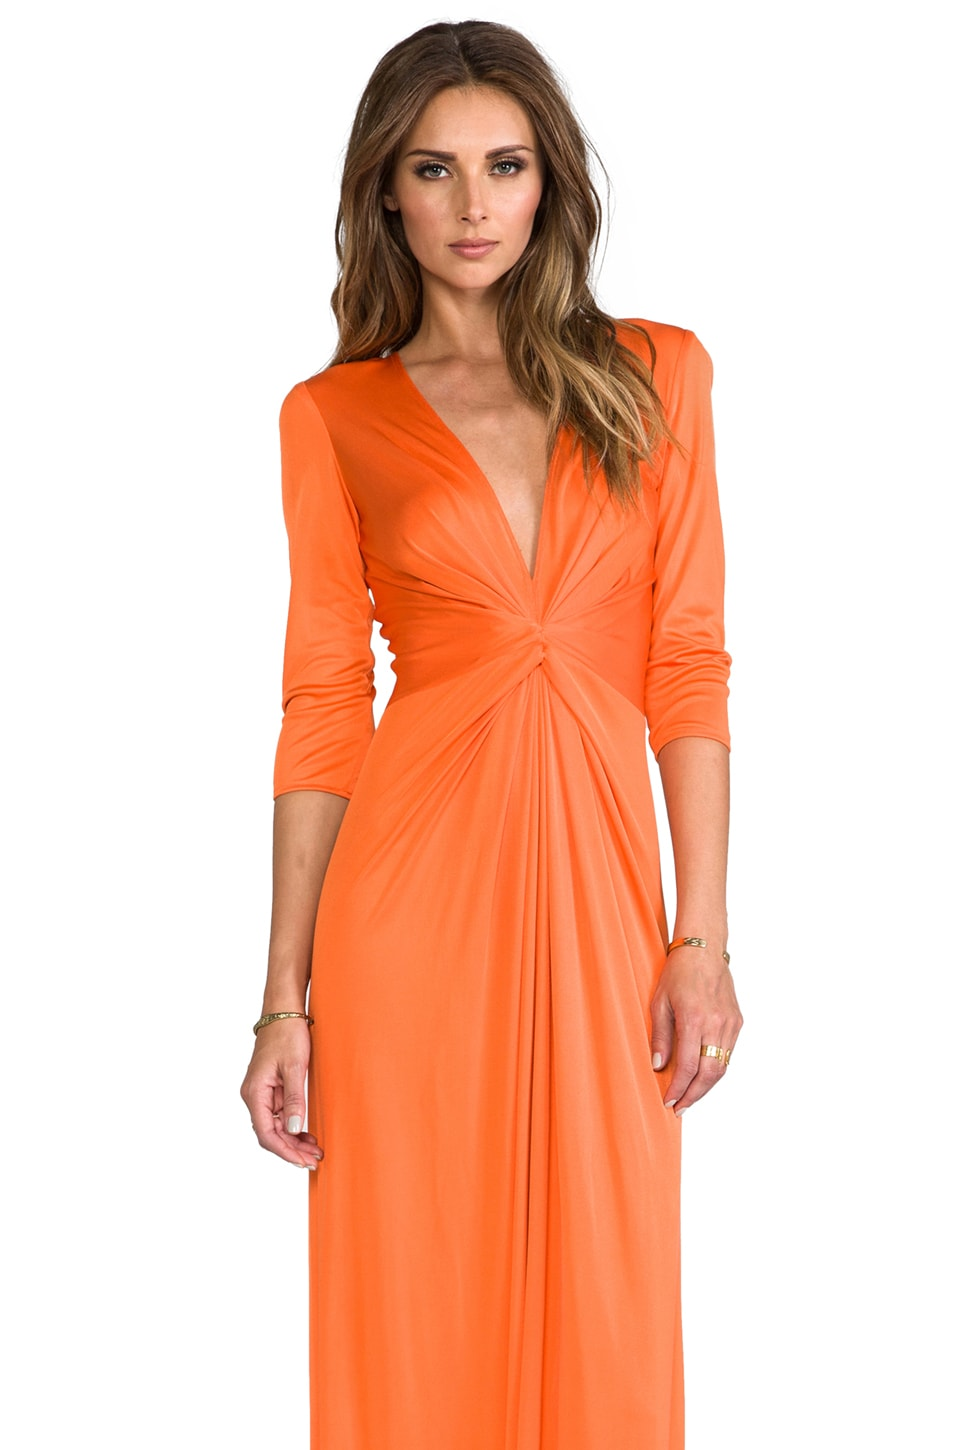 Issa Deep V-Neck Silk Jersey Maxi Dress in Sunset